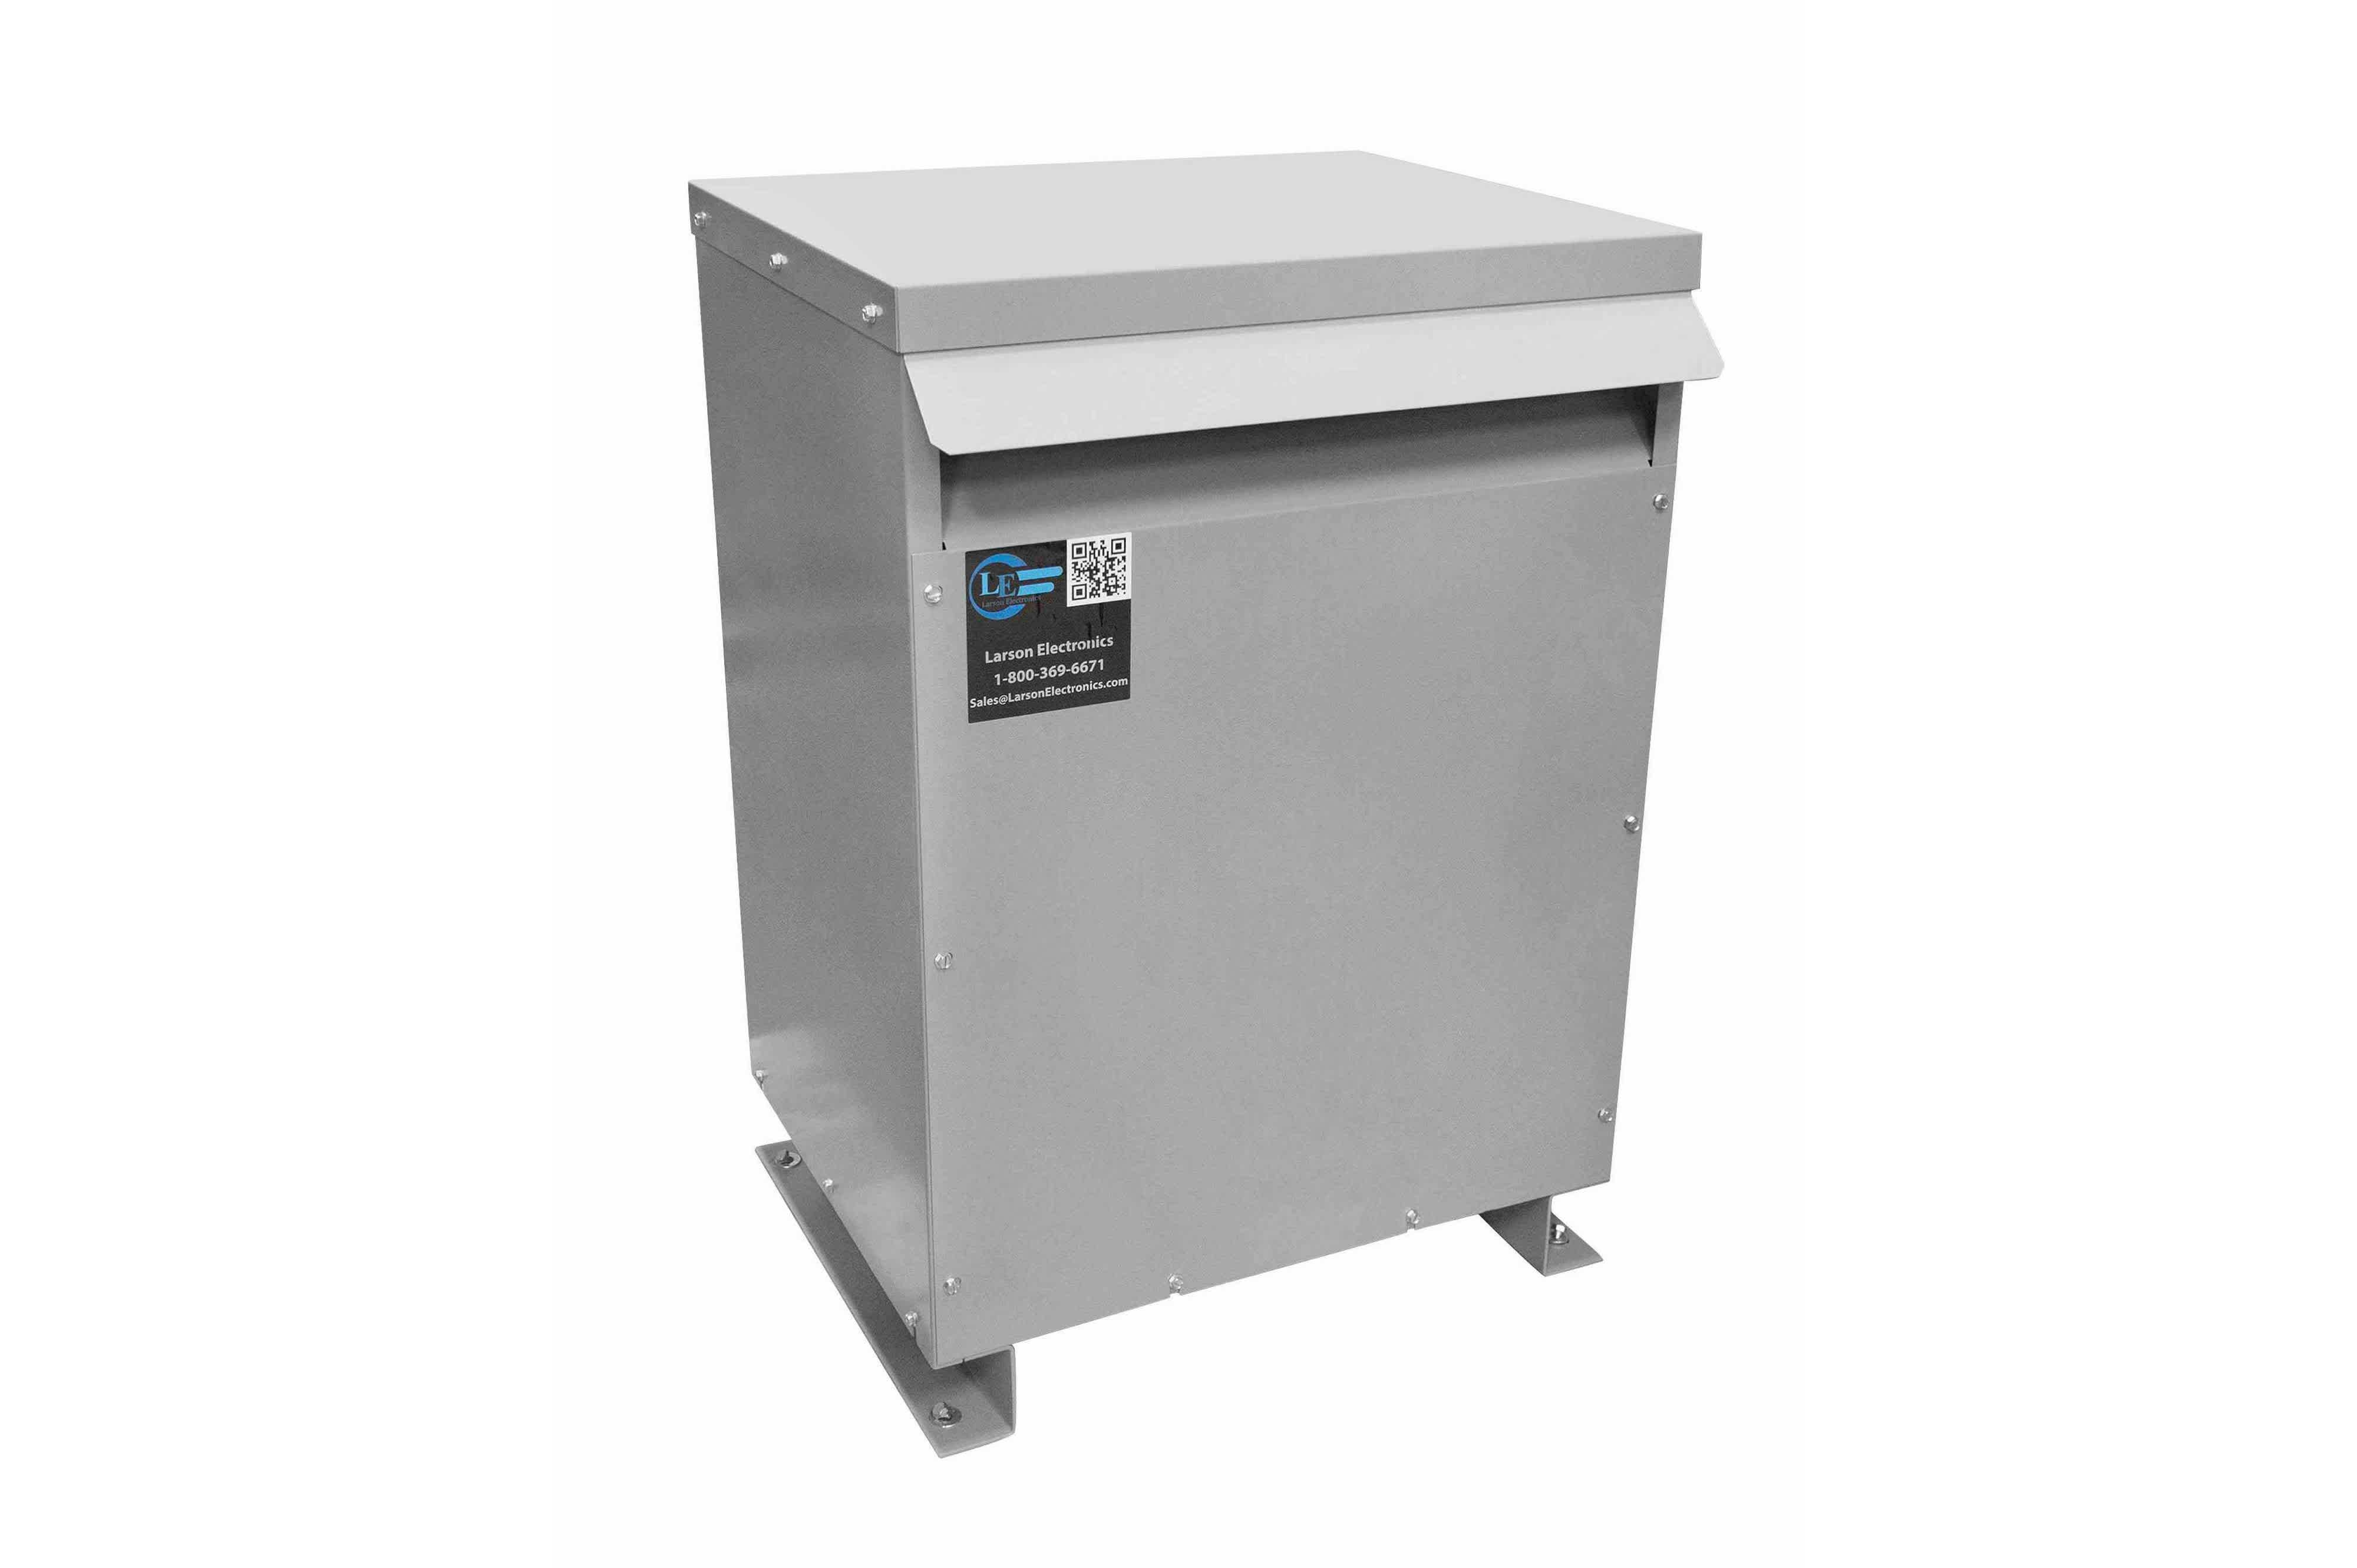 750 kVA 3PH Isolation Transformer, 600V Delta Primary, 208V Delta Secondary, N3R, Ventilated, 60 Hz